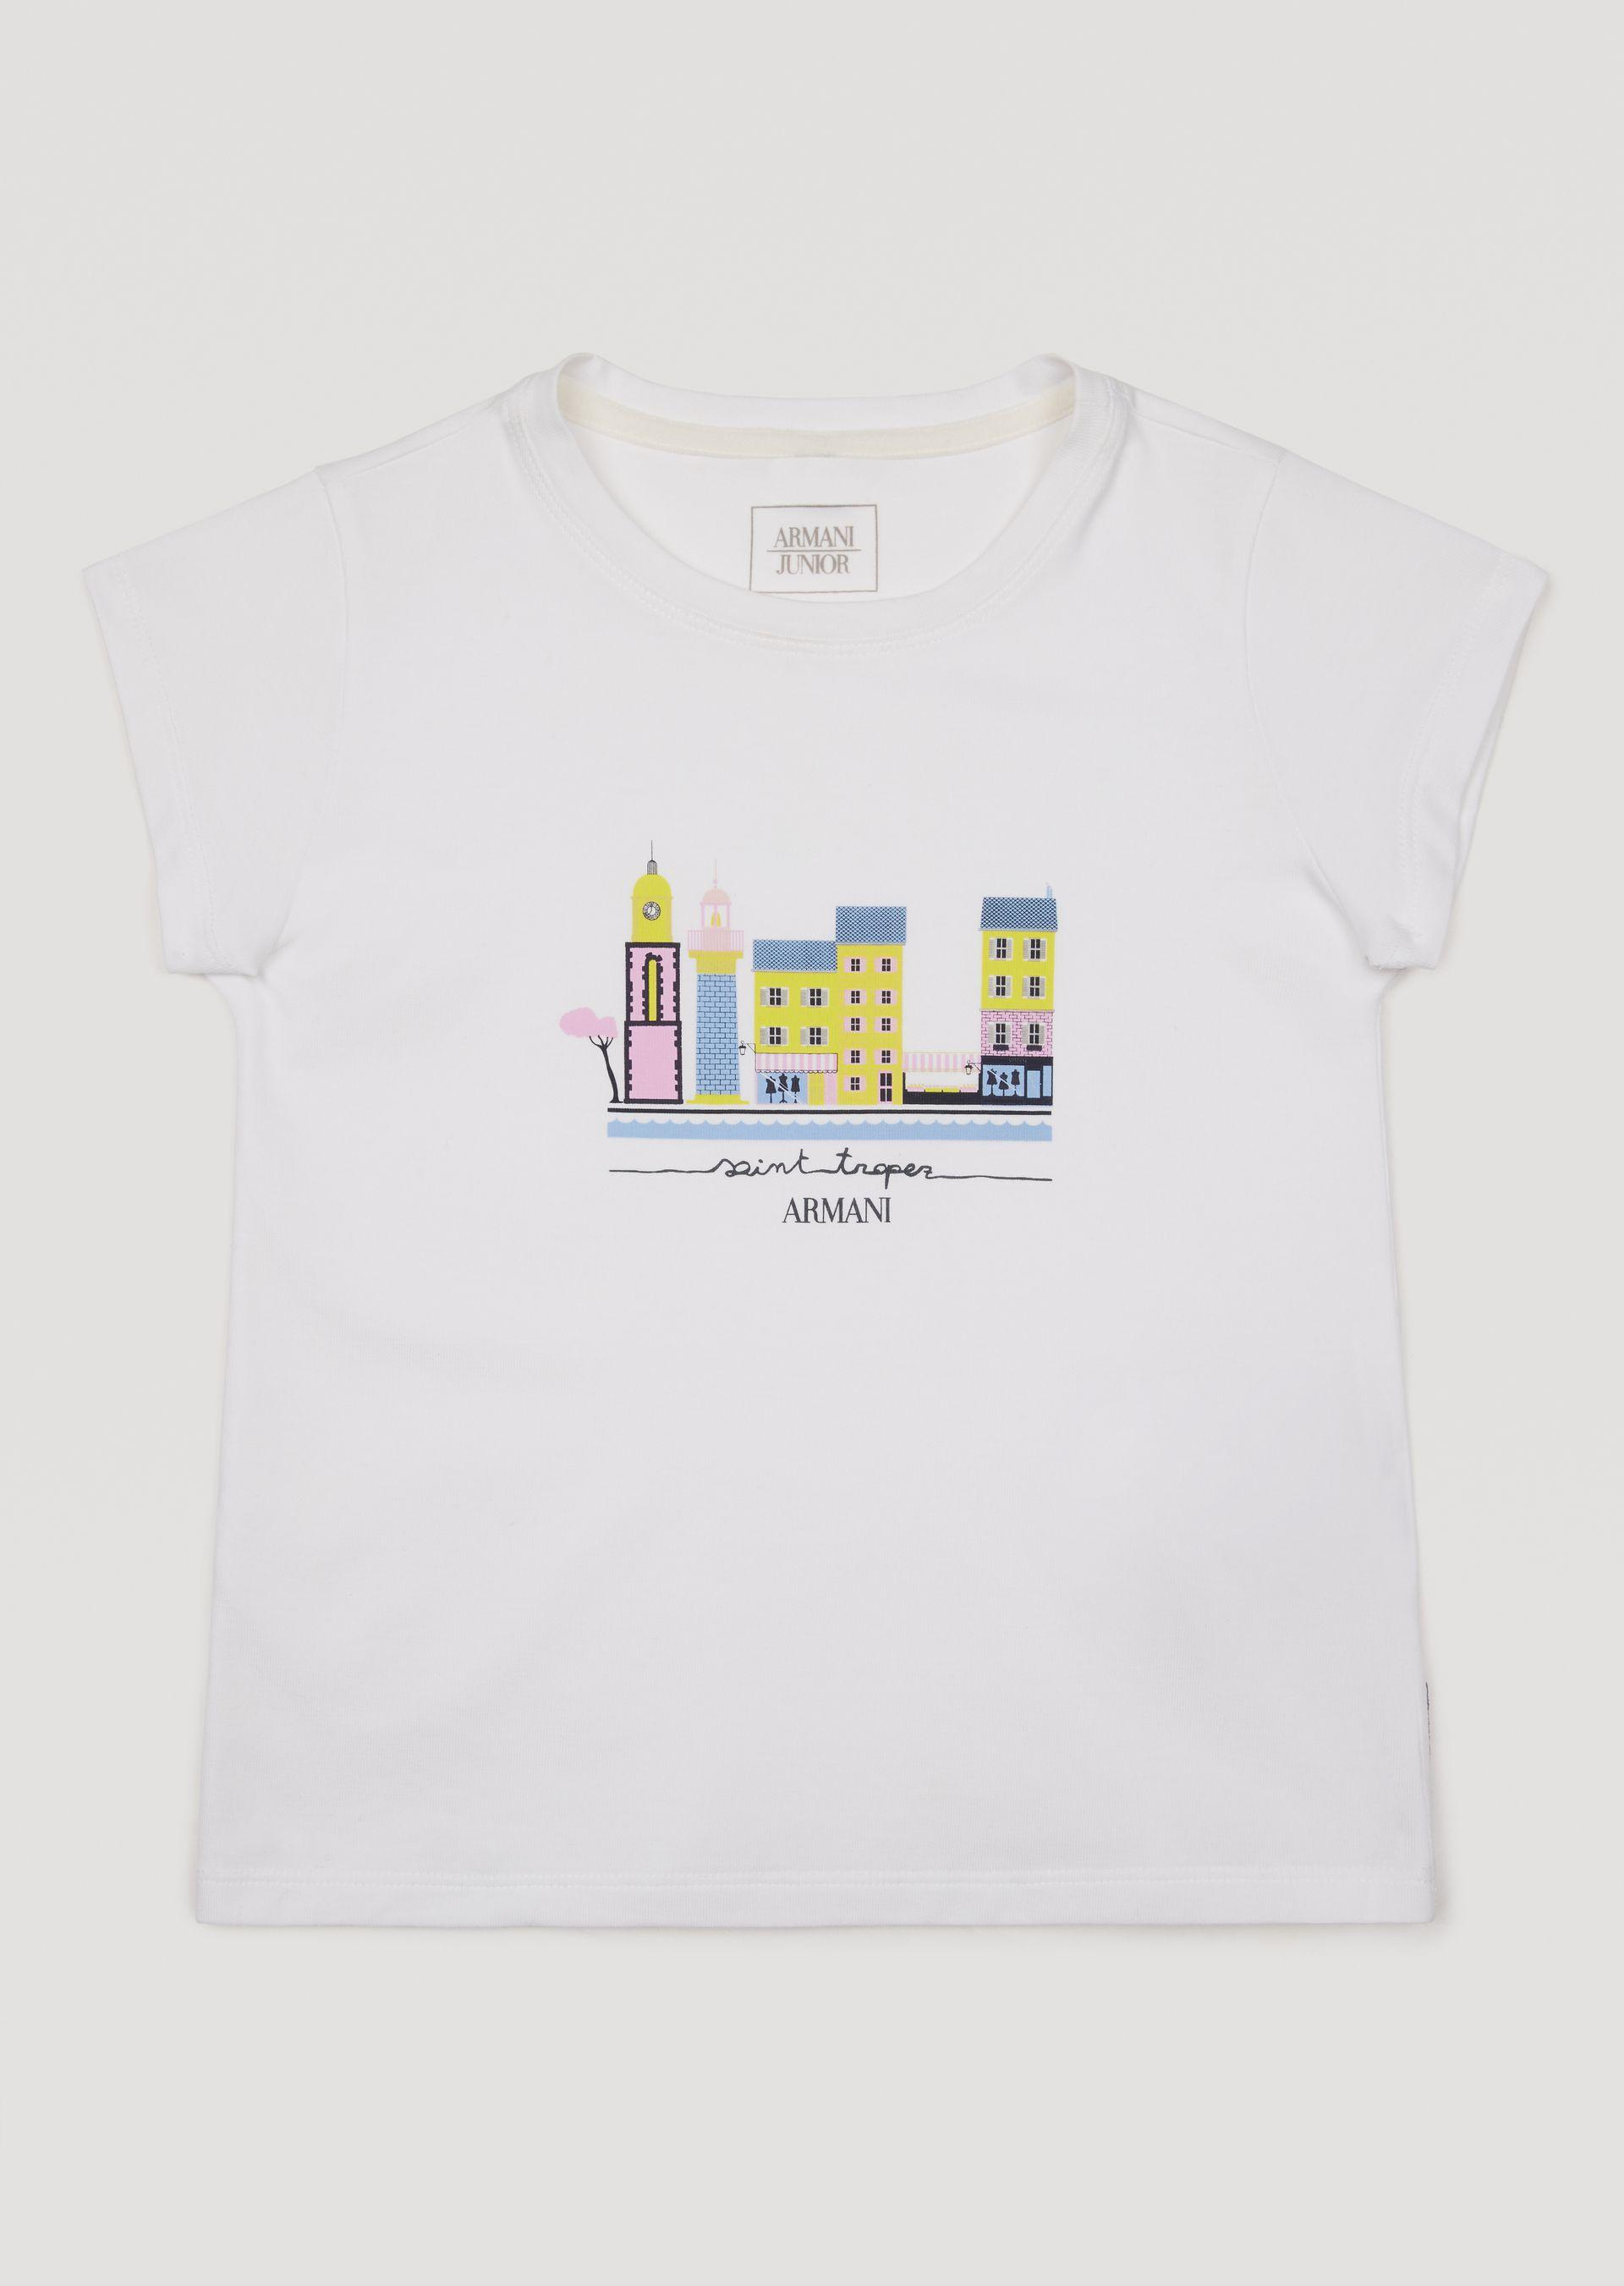 Emporio Armani T-shirts - Item 12156108 In White ; Red